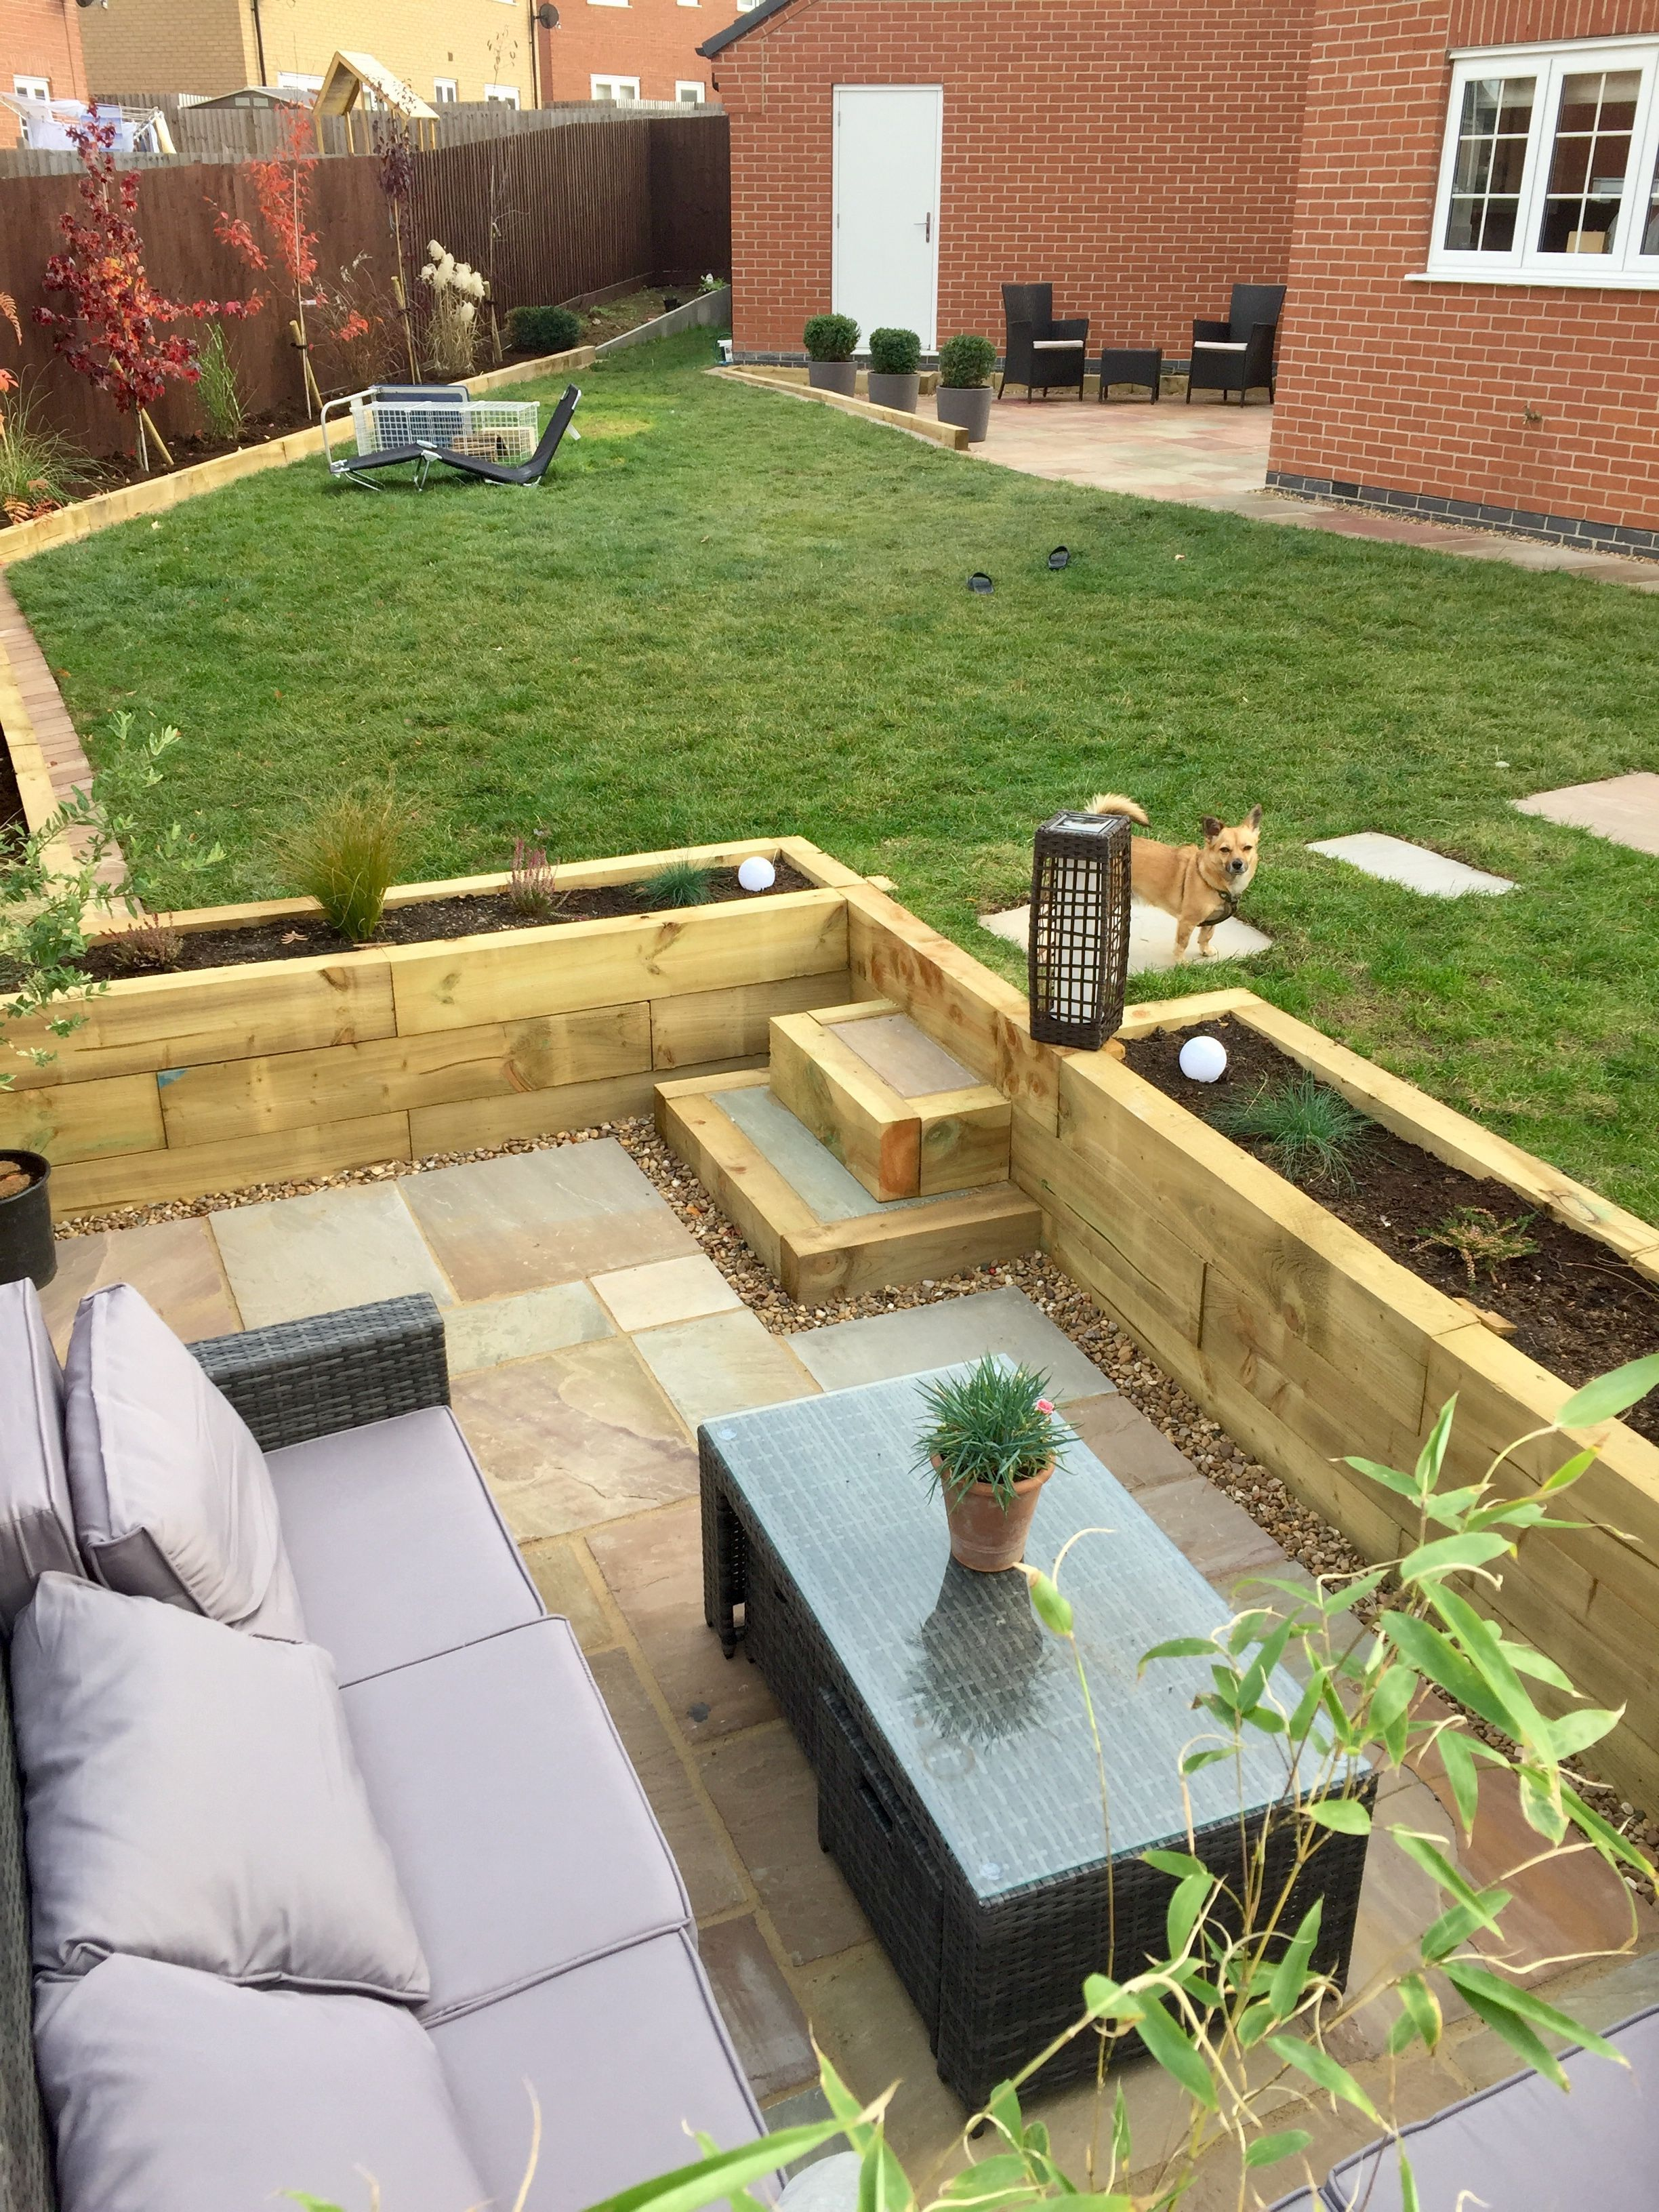 Best Screen Sunken Garden Seating Suggestions Outdoor Spaces And Patios Beckon Particularly When The Weather G In 2021 Sunken Patio Garden Seating Area Garden Seating